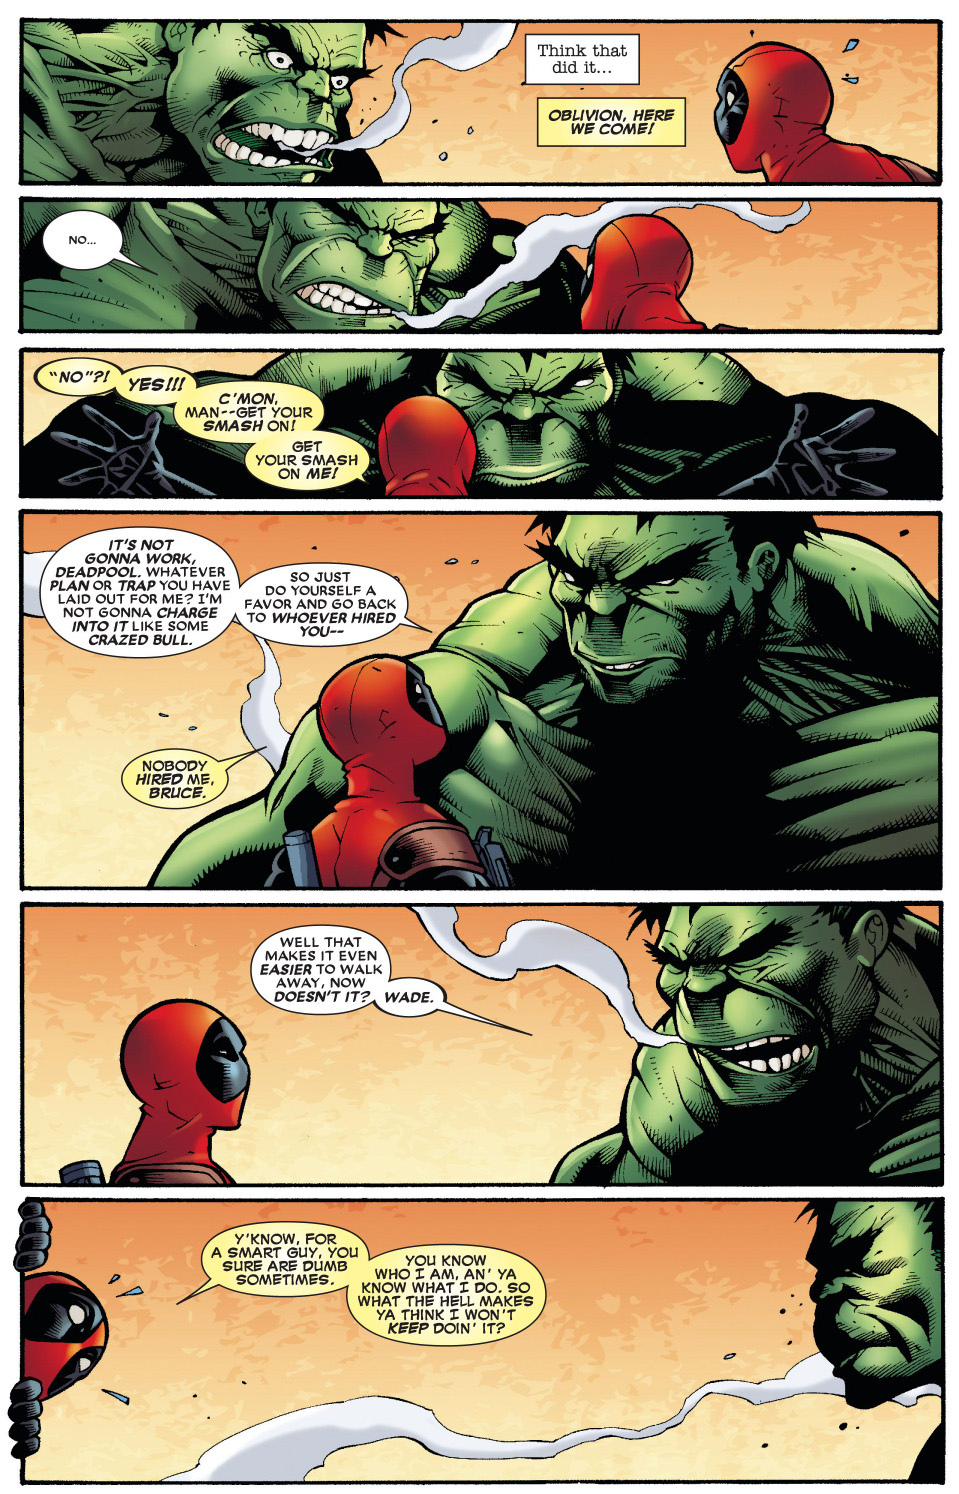 Deadpool VS The Hulk | Comicnewbies